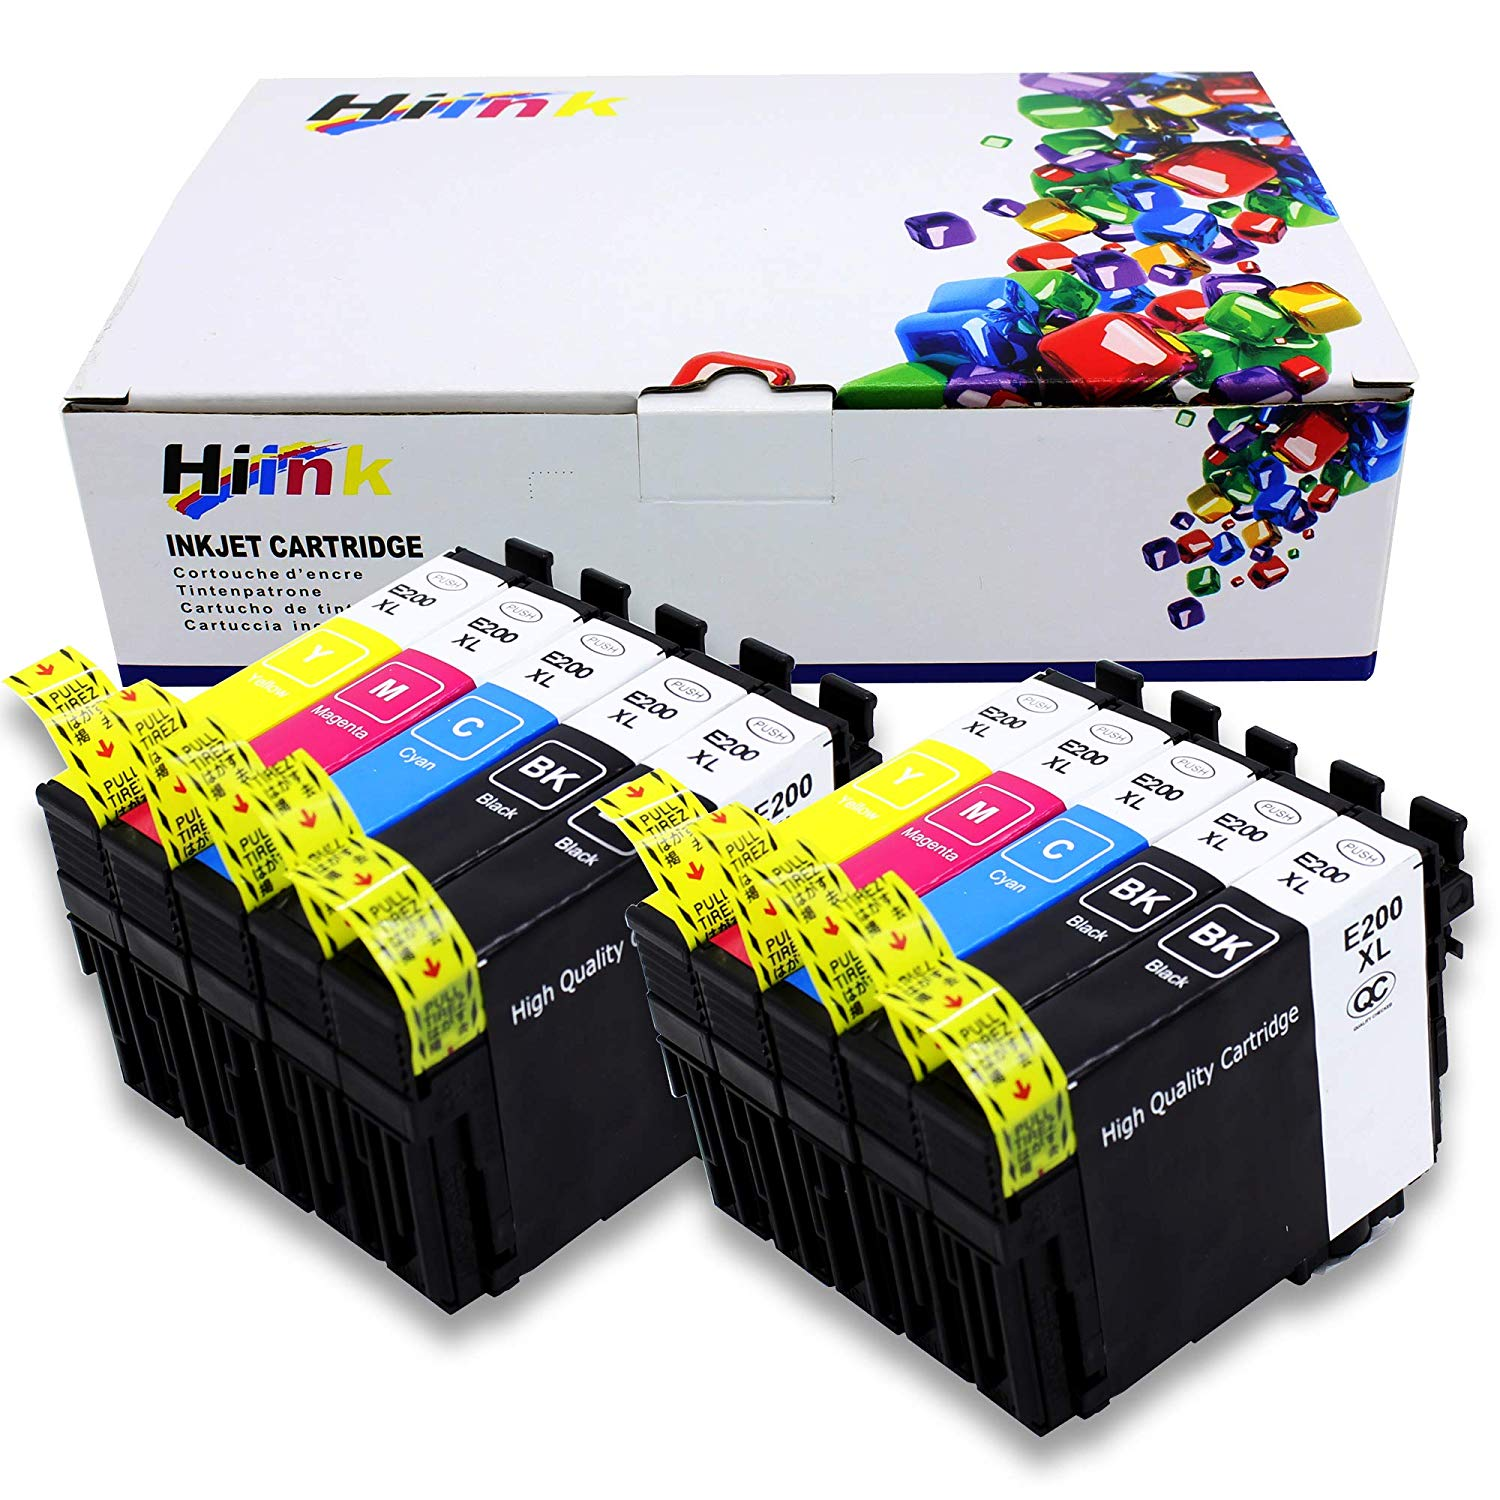 HIINK Remanufactured Ink Cartridge Replacement for Epson T200 200XL High Yield Ink Used with Epson XP-200 XP-300 XP-310 XP-400 XP-410 WF-2520 WF-2530 WF-2540 (10-Pack)